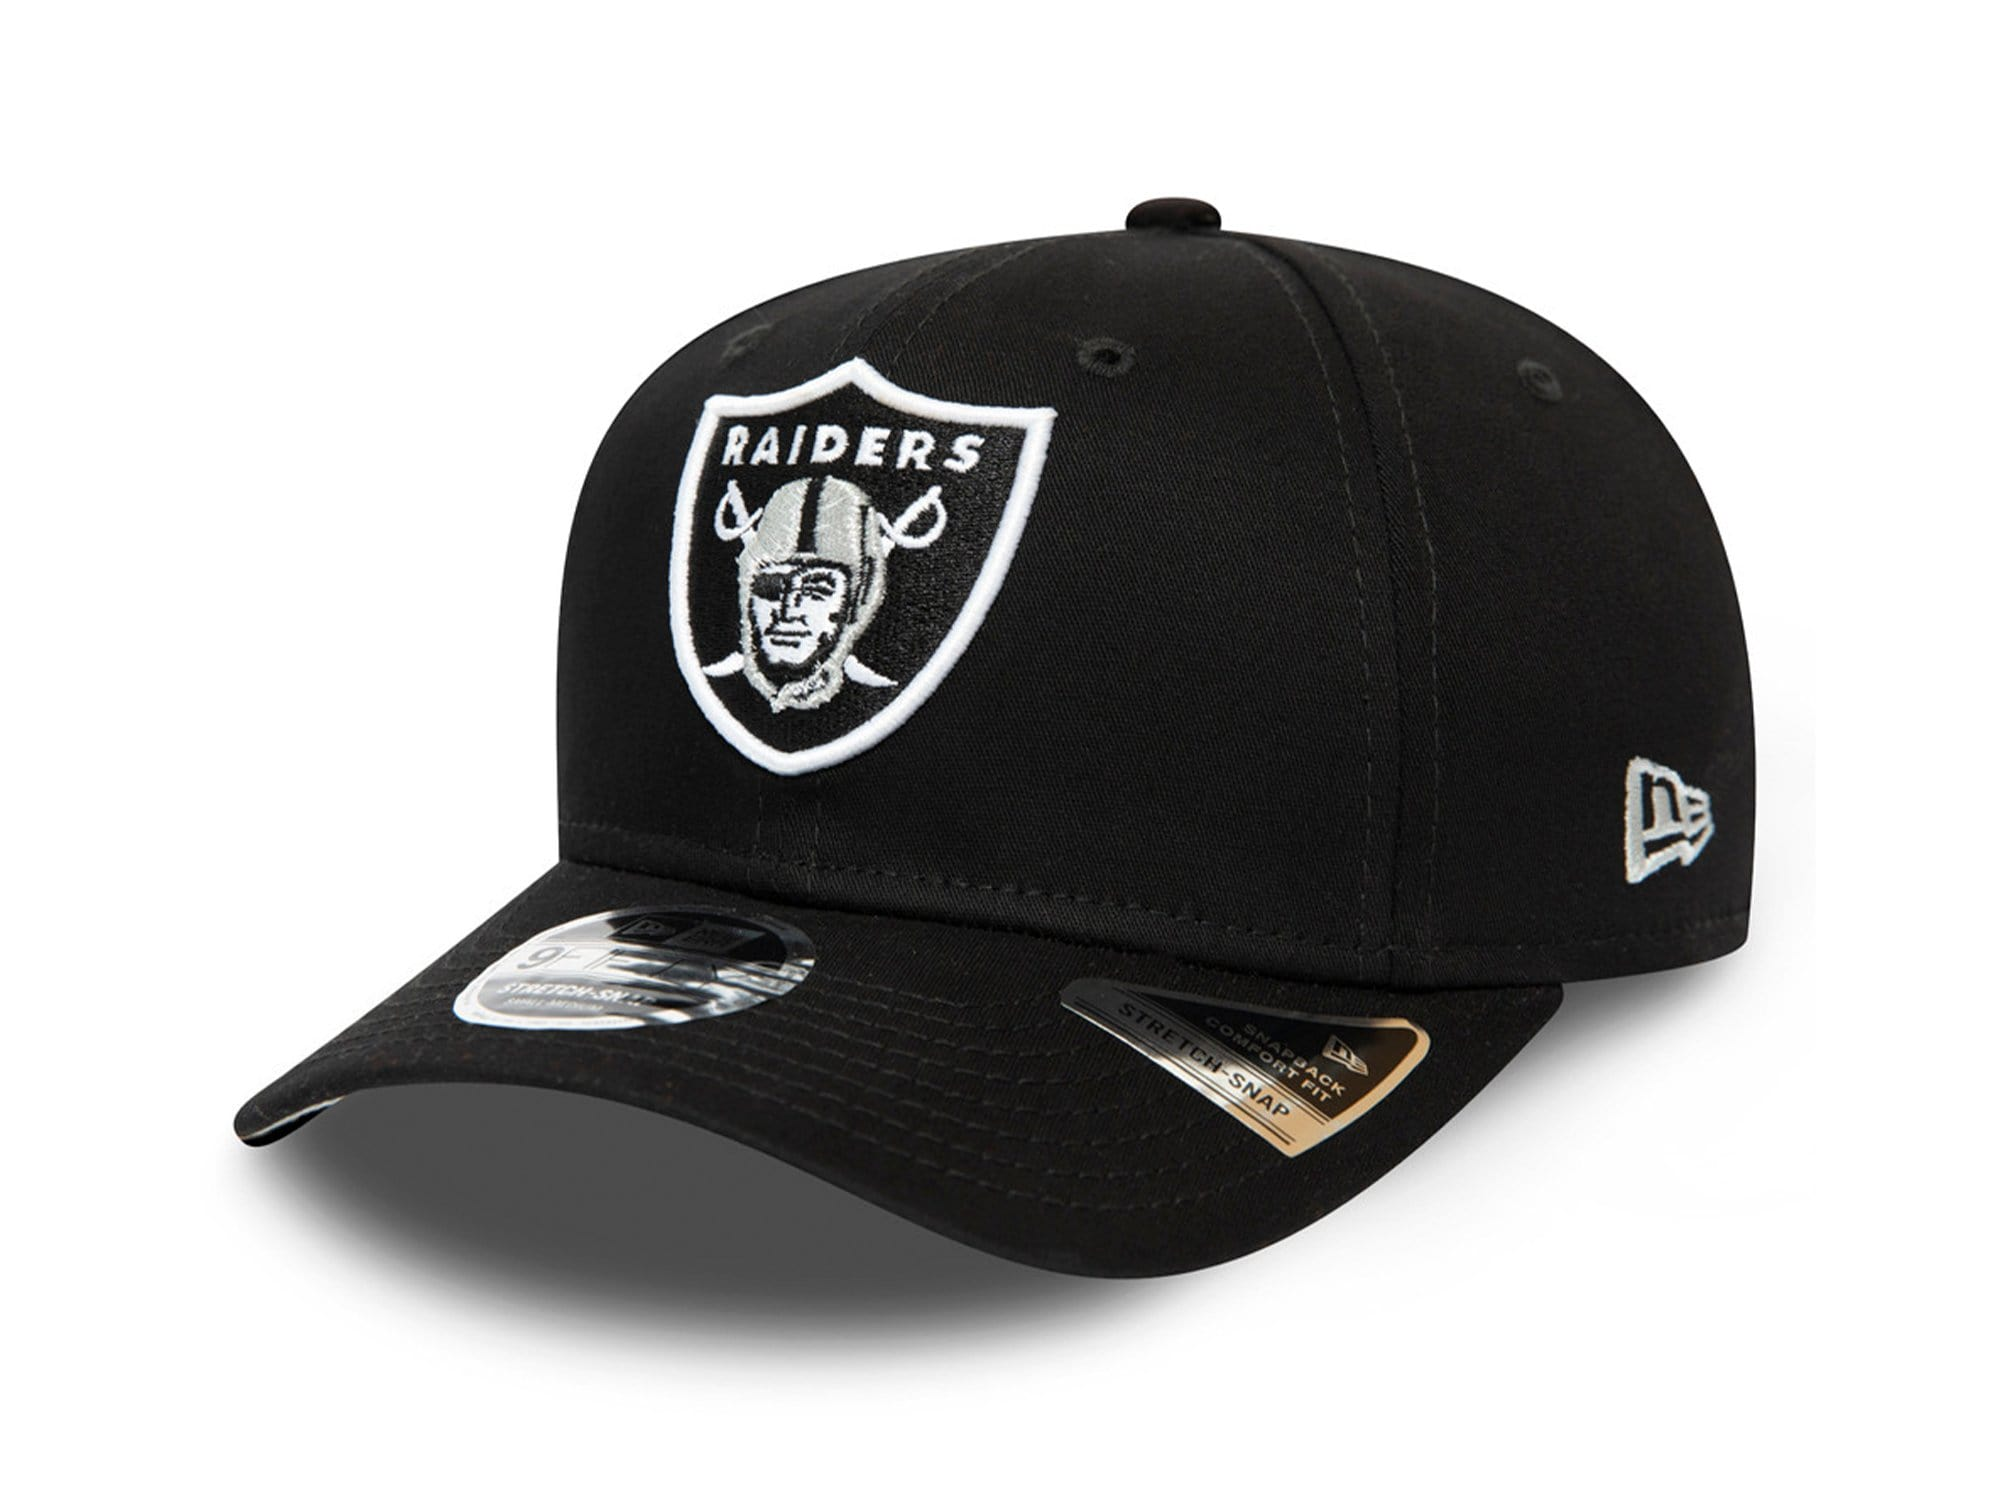 Jockey New Era Oakland Raiders 950 stretch Unisex Negro